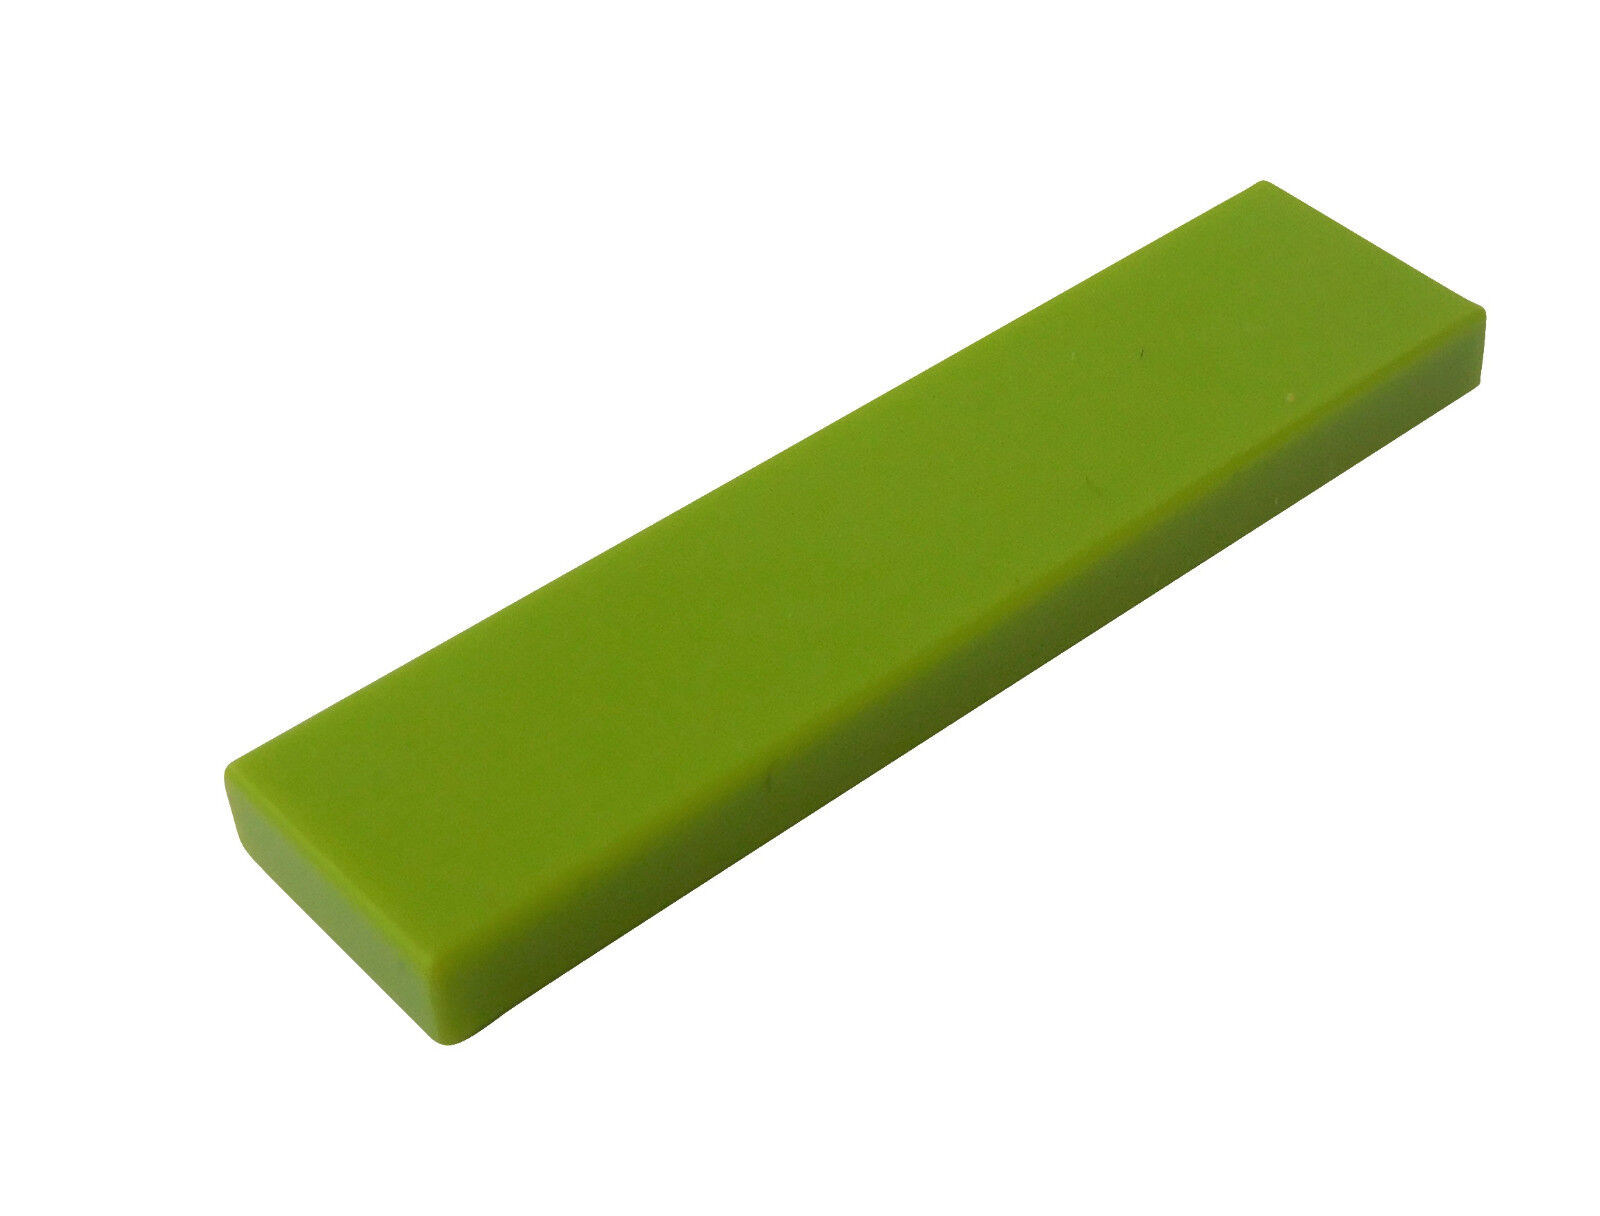 Tile 1 x 4 LIME 2431 8 LEGO Parts~